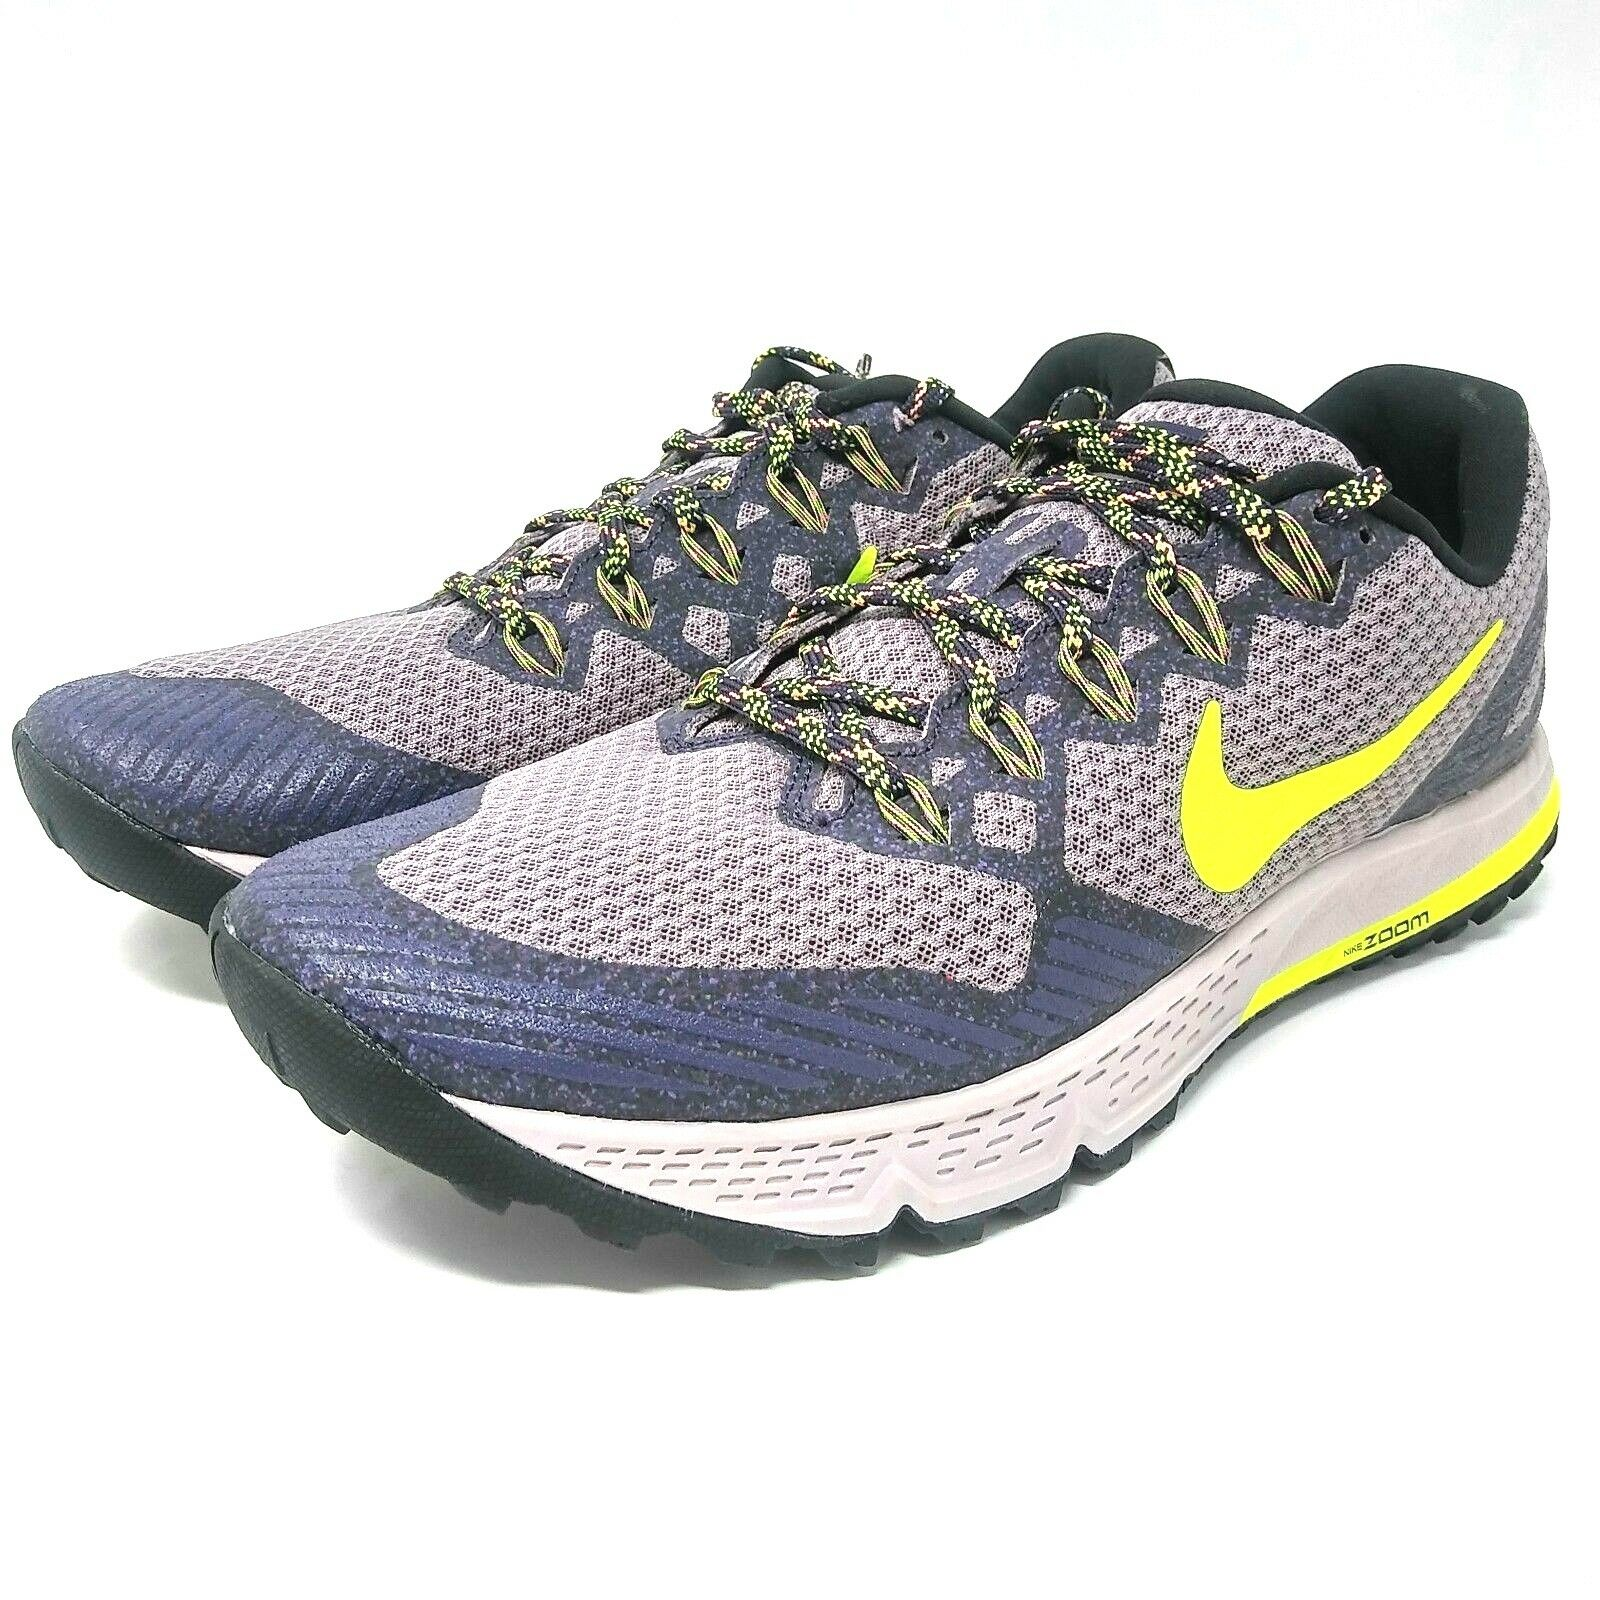 NEW Nike Womens Air Zoom Wildhorse 3 Trail Running Purple 749337-501 Comfortable Wild casual shoes